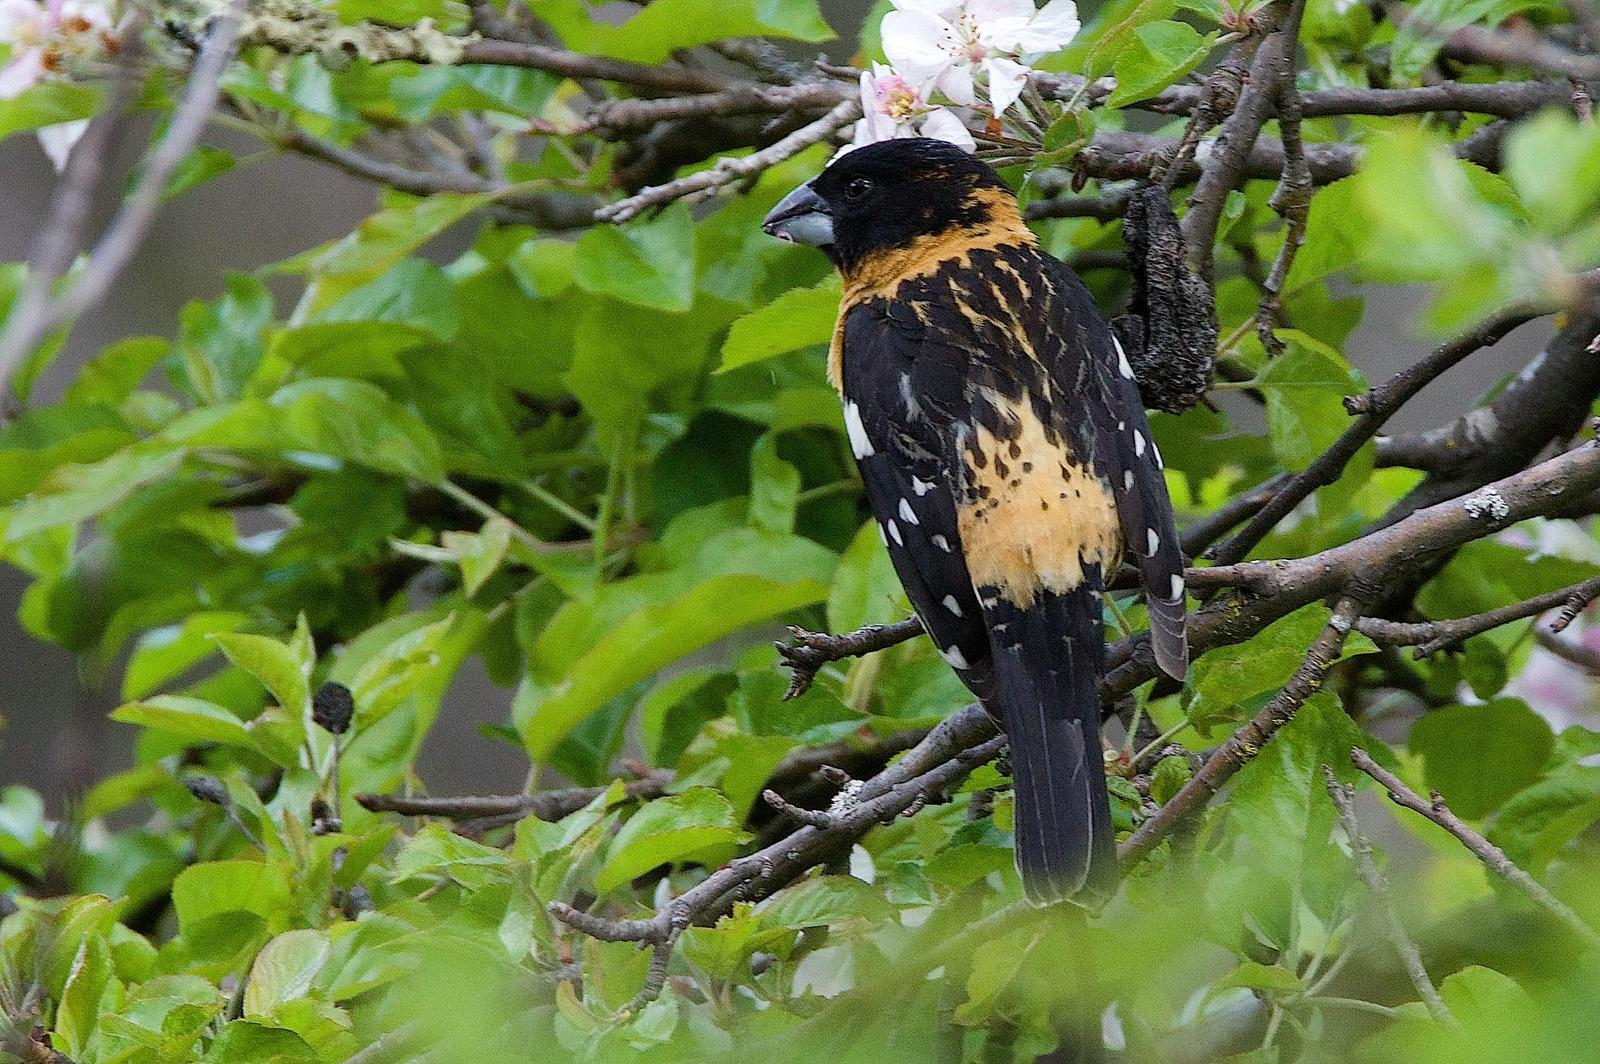 Black-headed Grosbeak Photo by Gerald Hoekstra